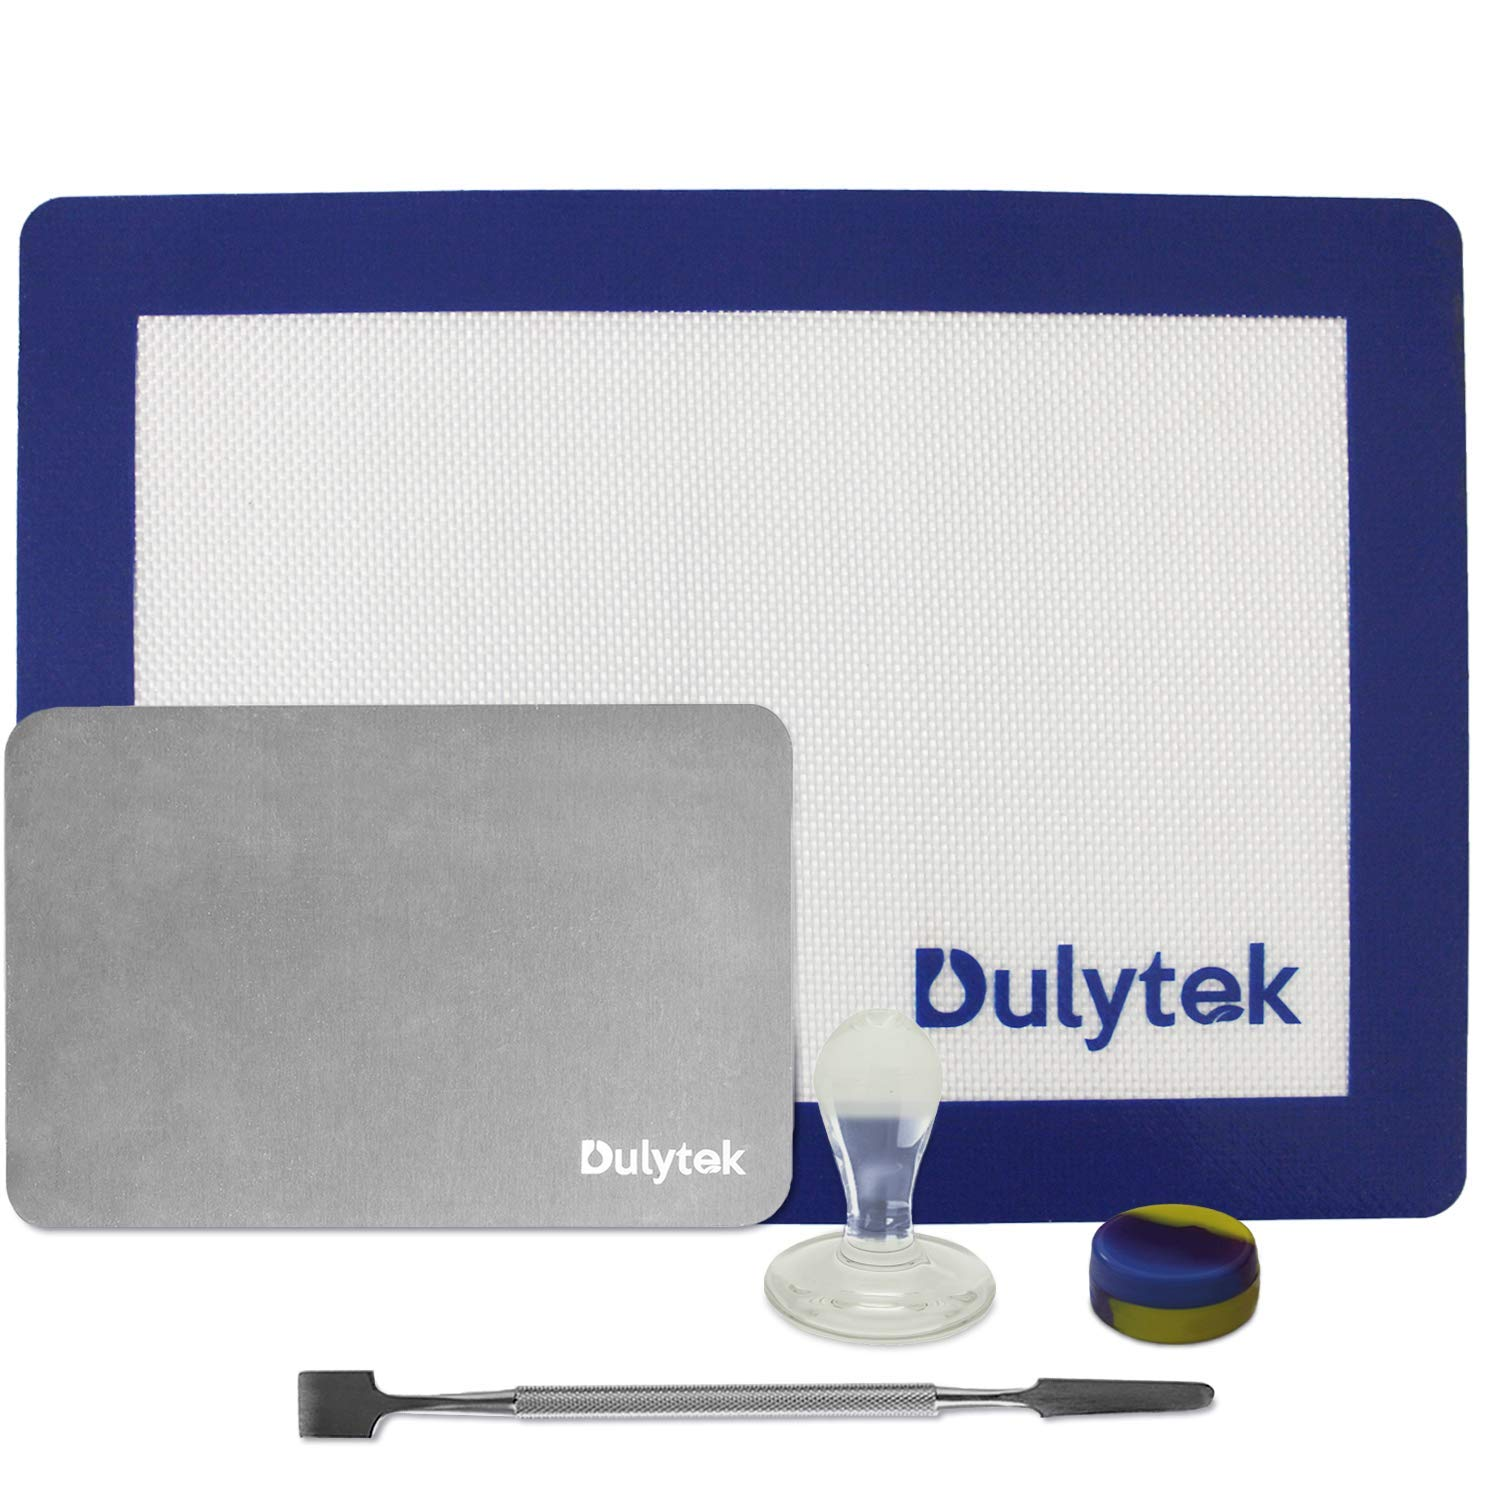 "Dulytek Wax Collection Gadget and Tool Set - Big Stainless Steel Scraper, Glass Stamp, Concentrate Jar, 4"" x 6"" Cooling Plate, Large Silicone Mat"